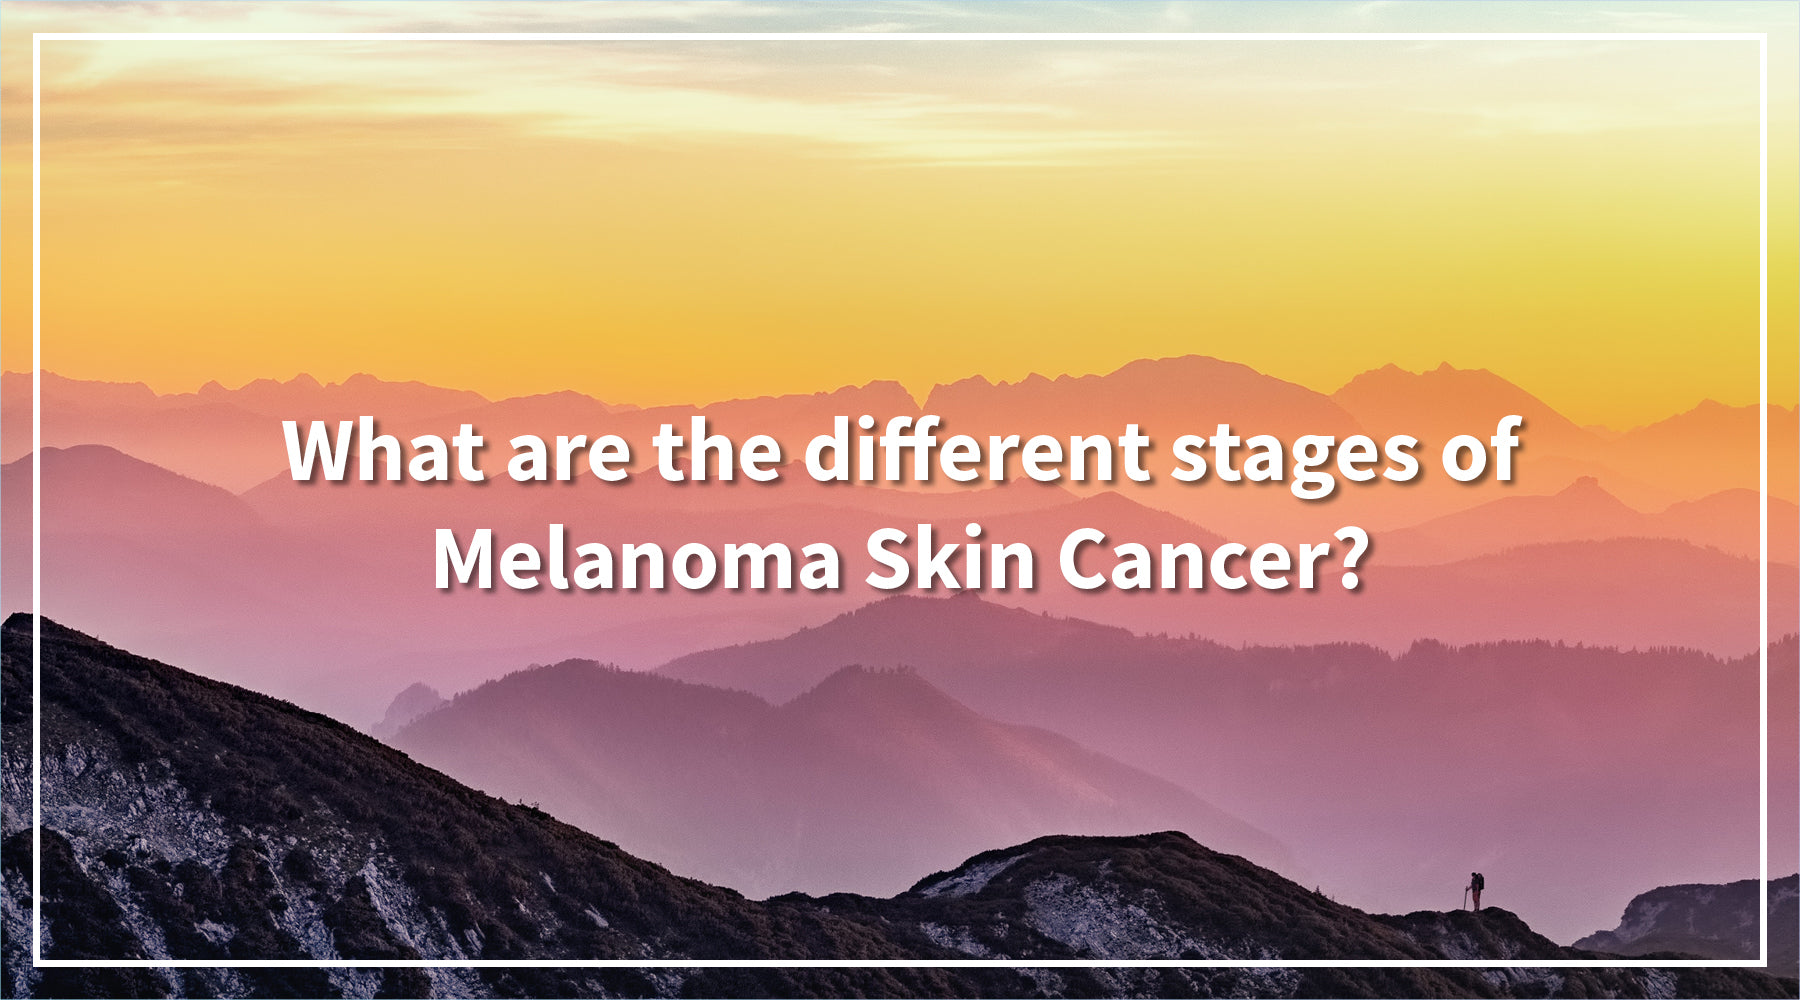 Solbari blog: What are the different stages of Melanoma Skin Cancer?